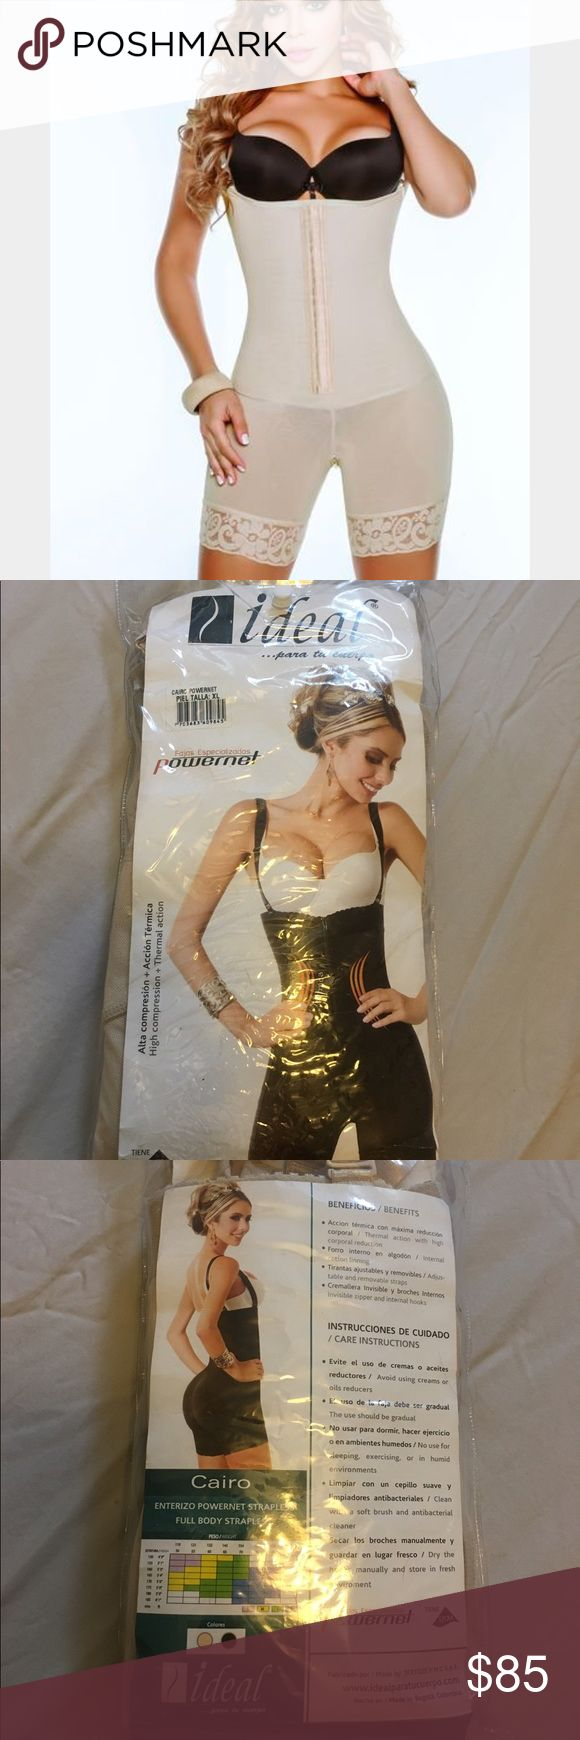 Full body strapless (faja colombiana) Full body strapless 100% anti allergic. Cairo powernet, high compression and thermal action.  Size: XL ideal Intimates & Sleepwear Shapewear